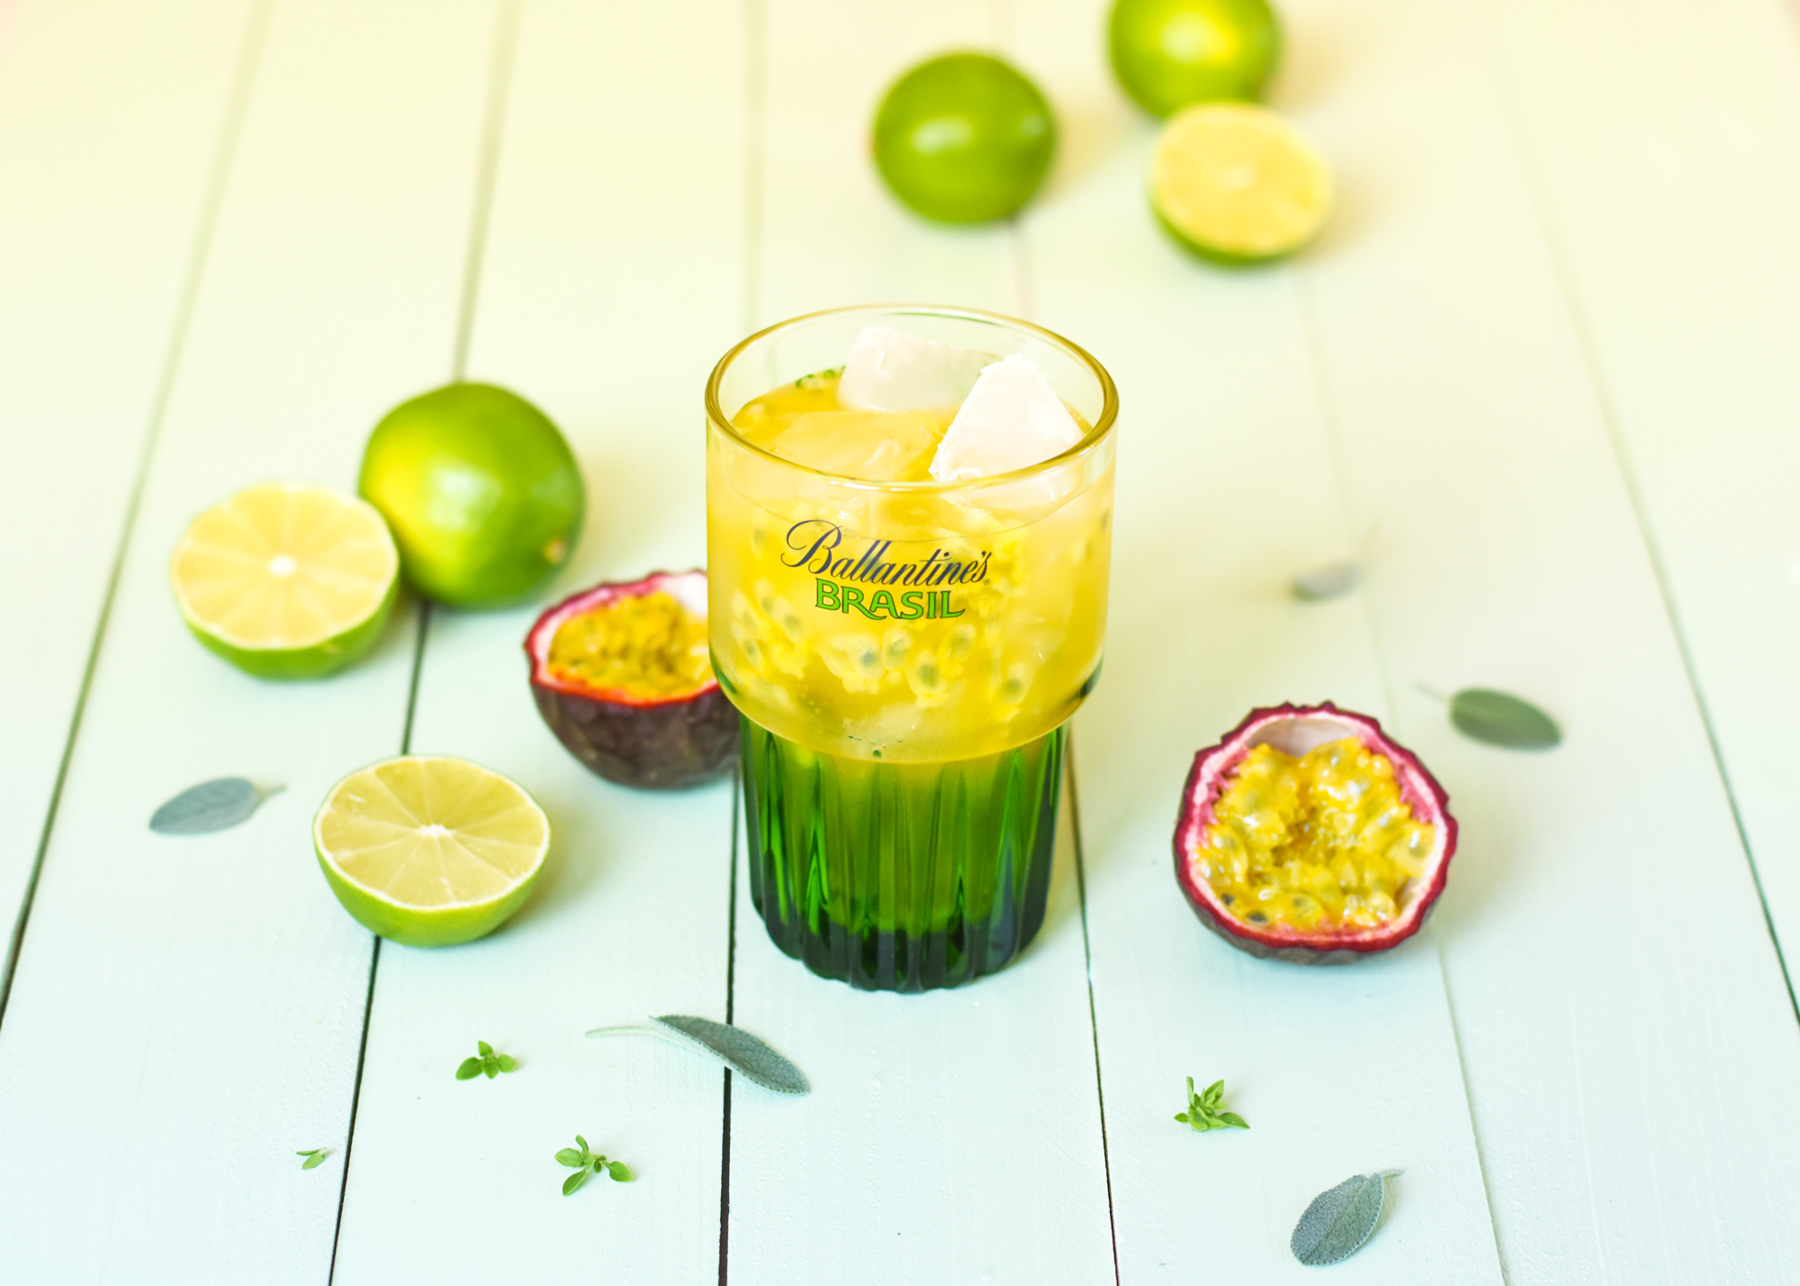 Leaf - Cocktail Ballantine's aux fruits de la passion, citron vert et noix de macadamia